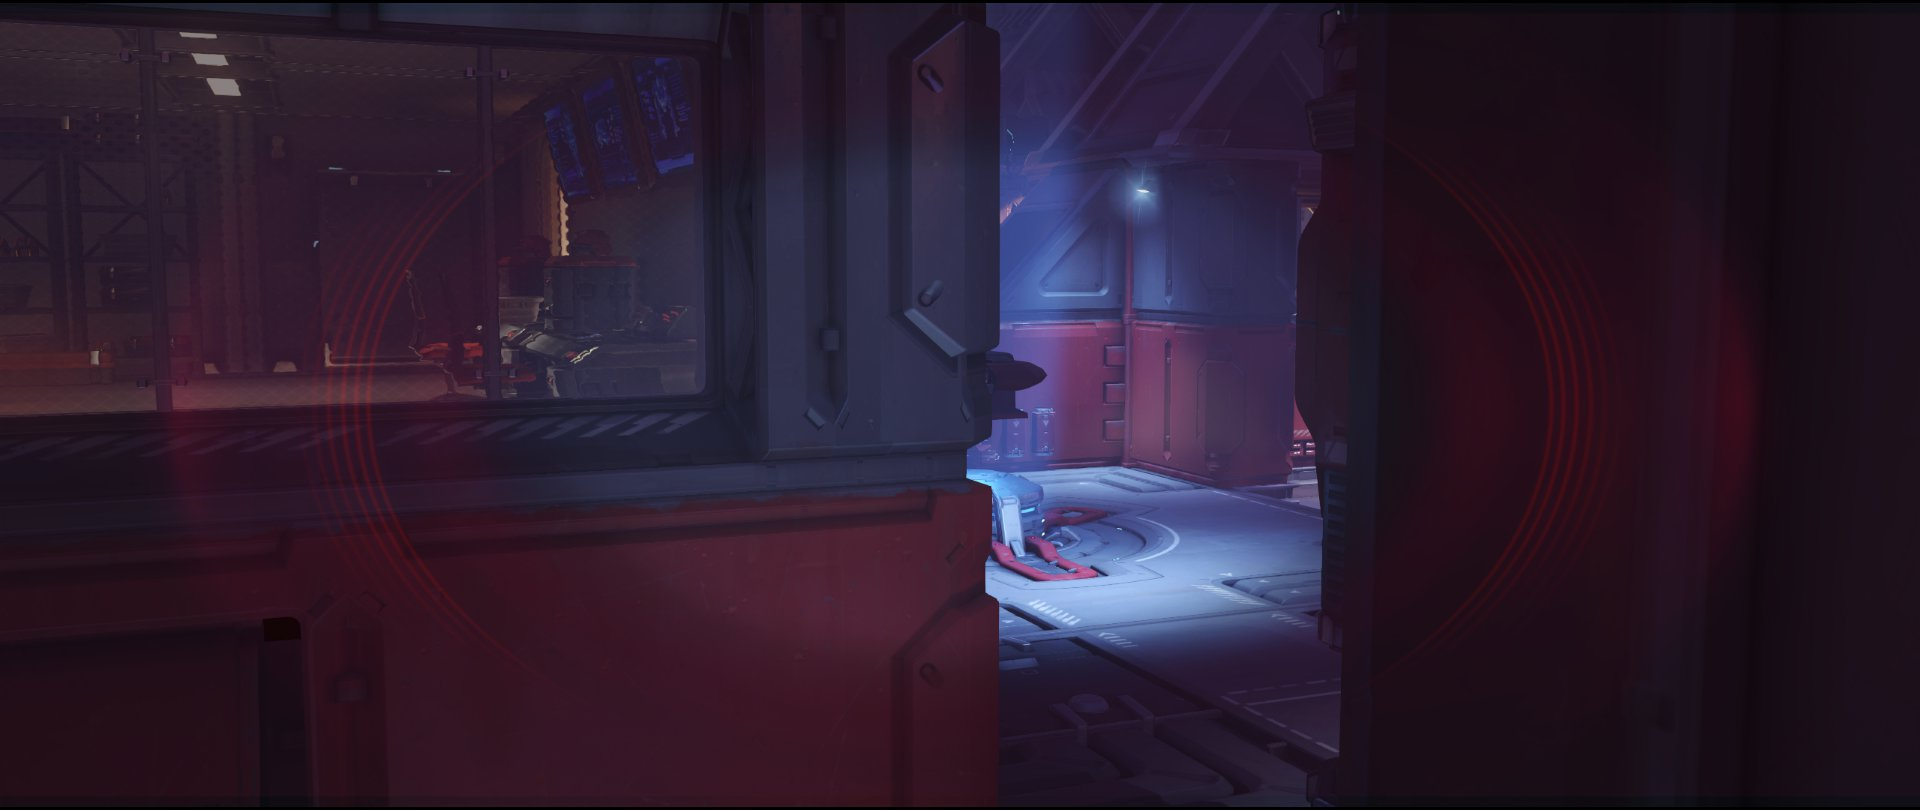 Fence point view attack sniping spot Widowmaker Volskaya Industries Overwatch.jpg